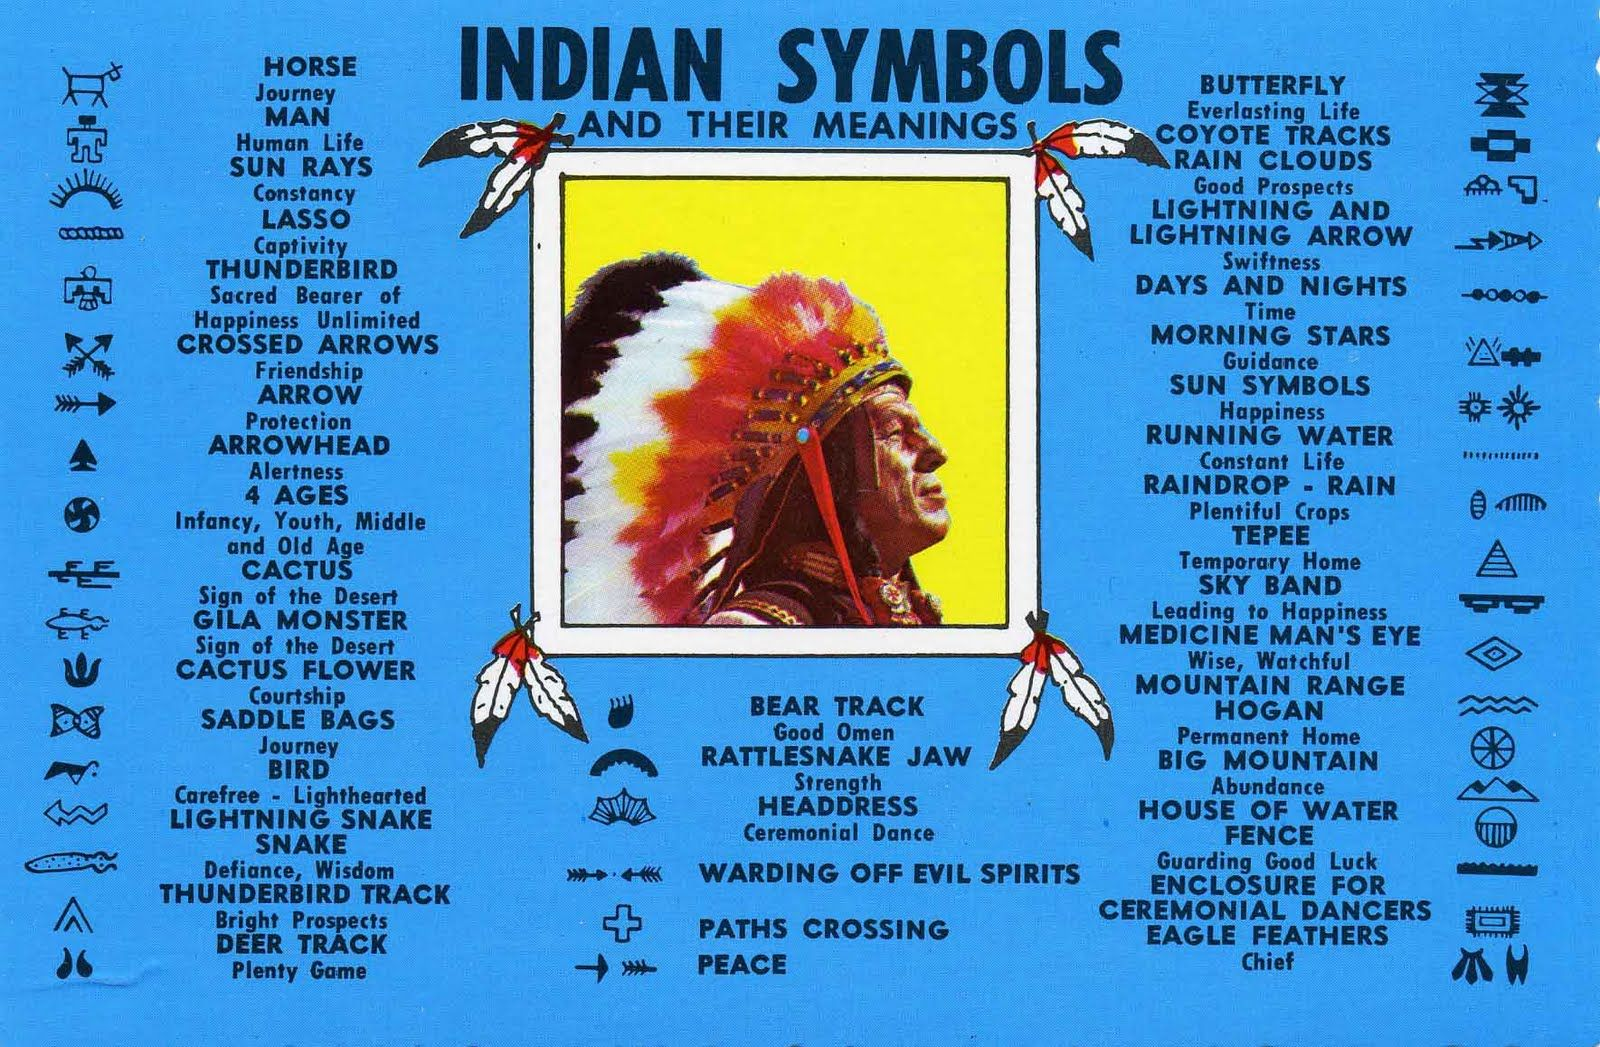 Native american cherokee indian symbol heading indian symbols native american cherokee indian symbol heading indian symbols and their meanings the native american symbols buycottarizona